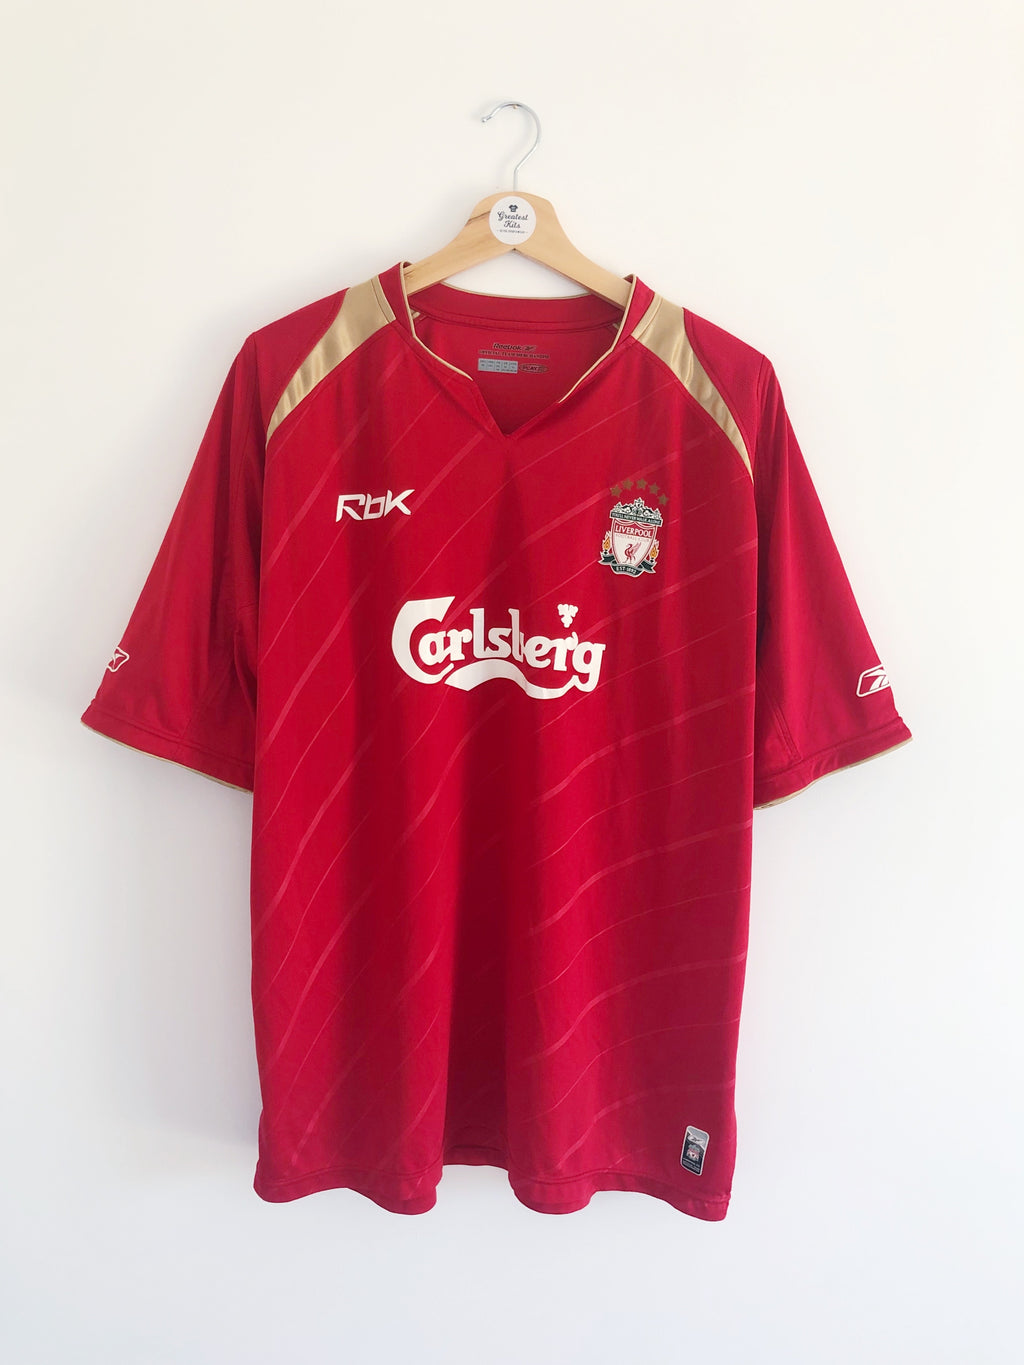 2005/06 Liverpool CL Home Shirt (XL) 8.5/10